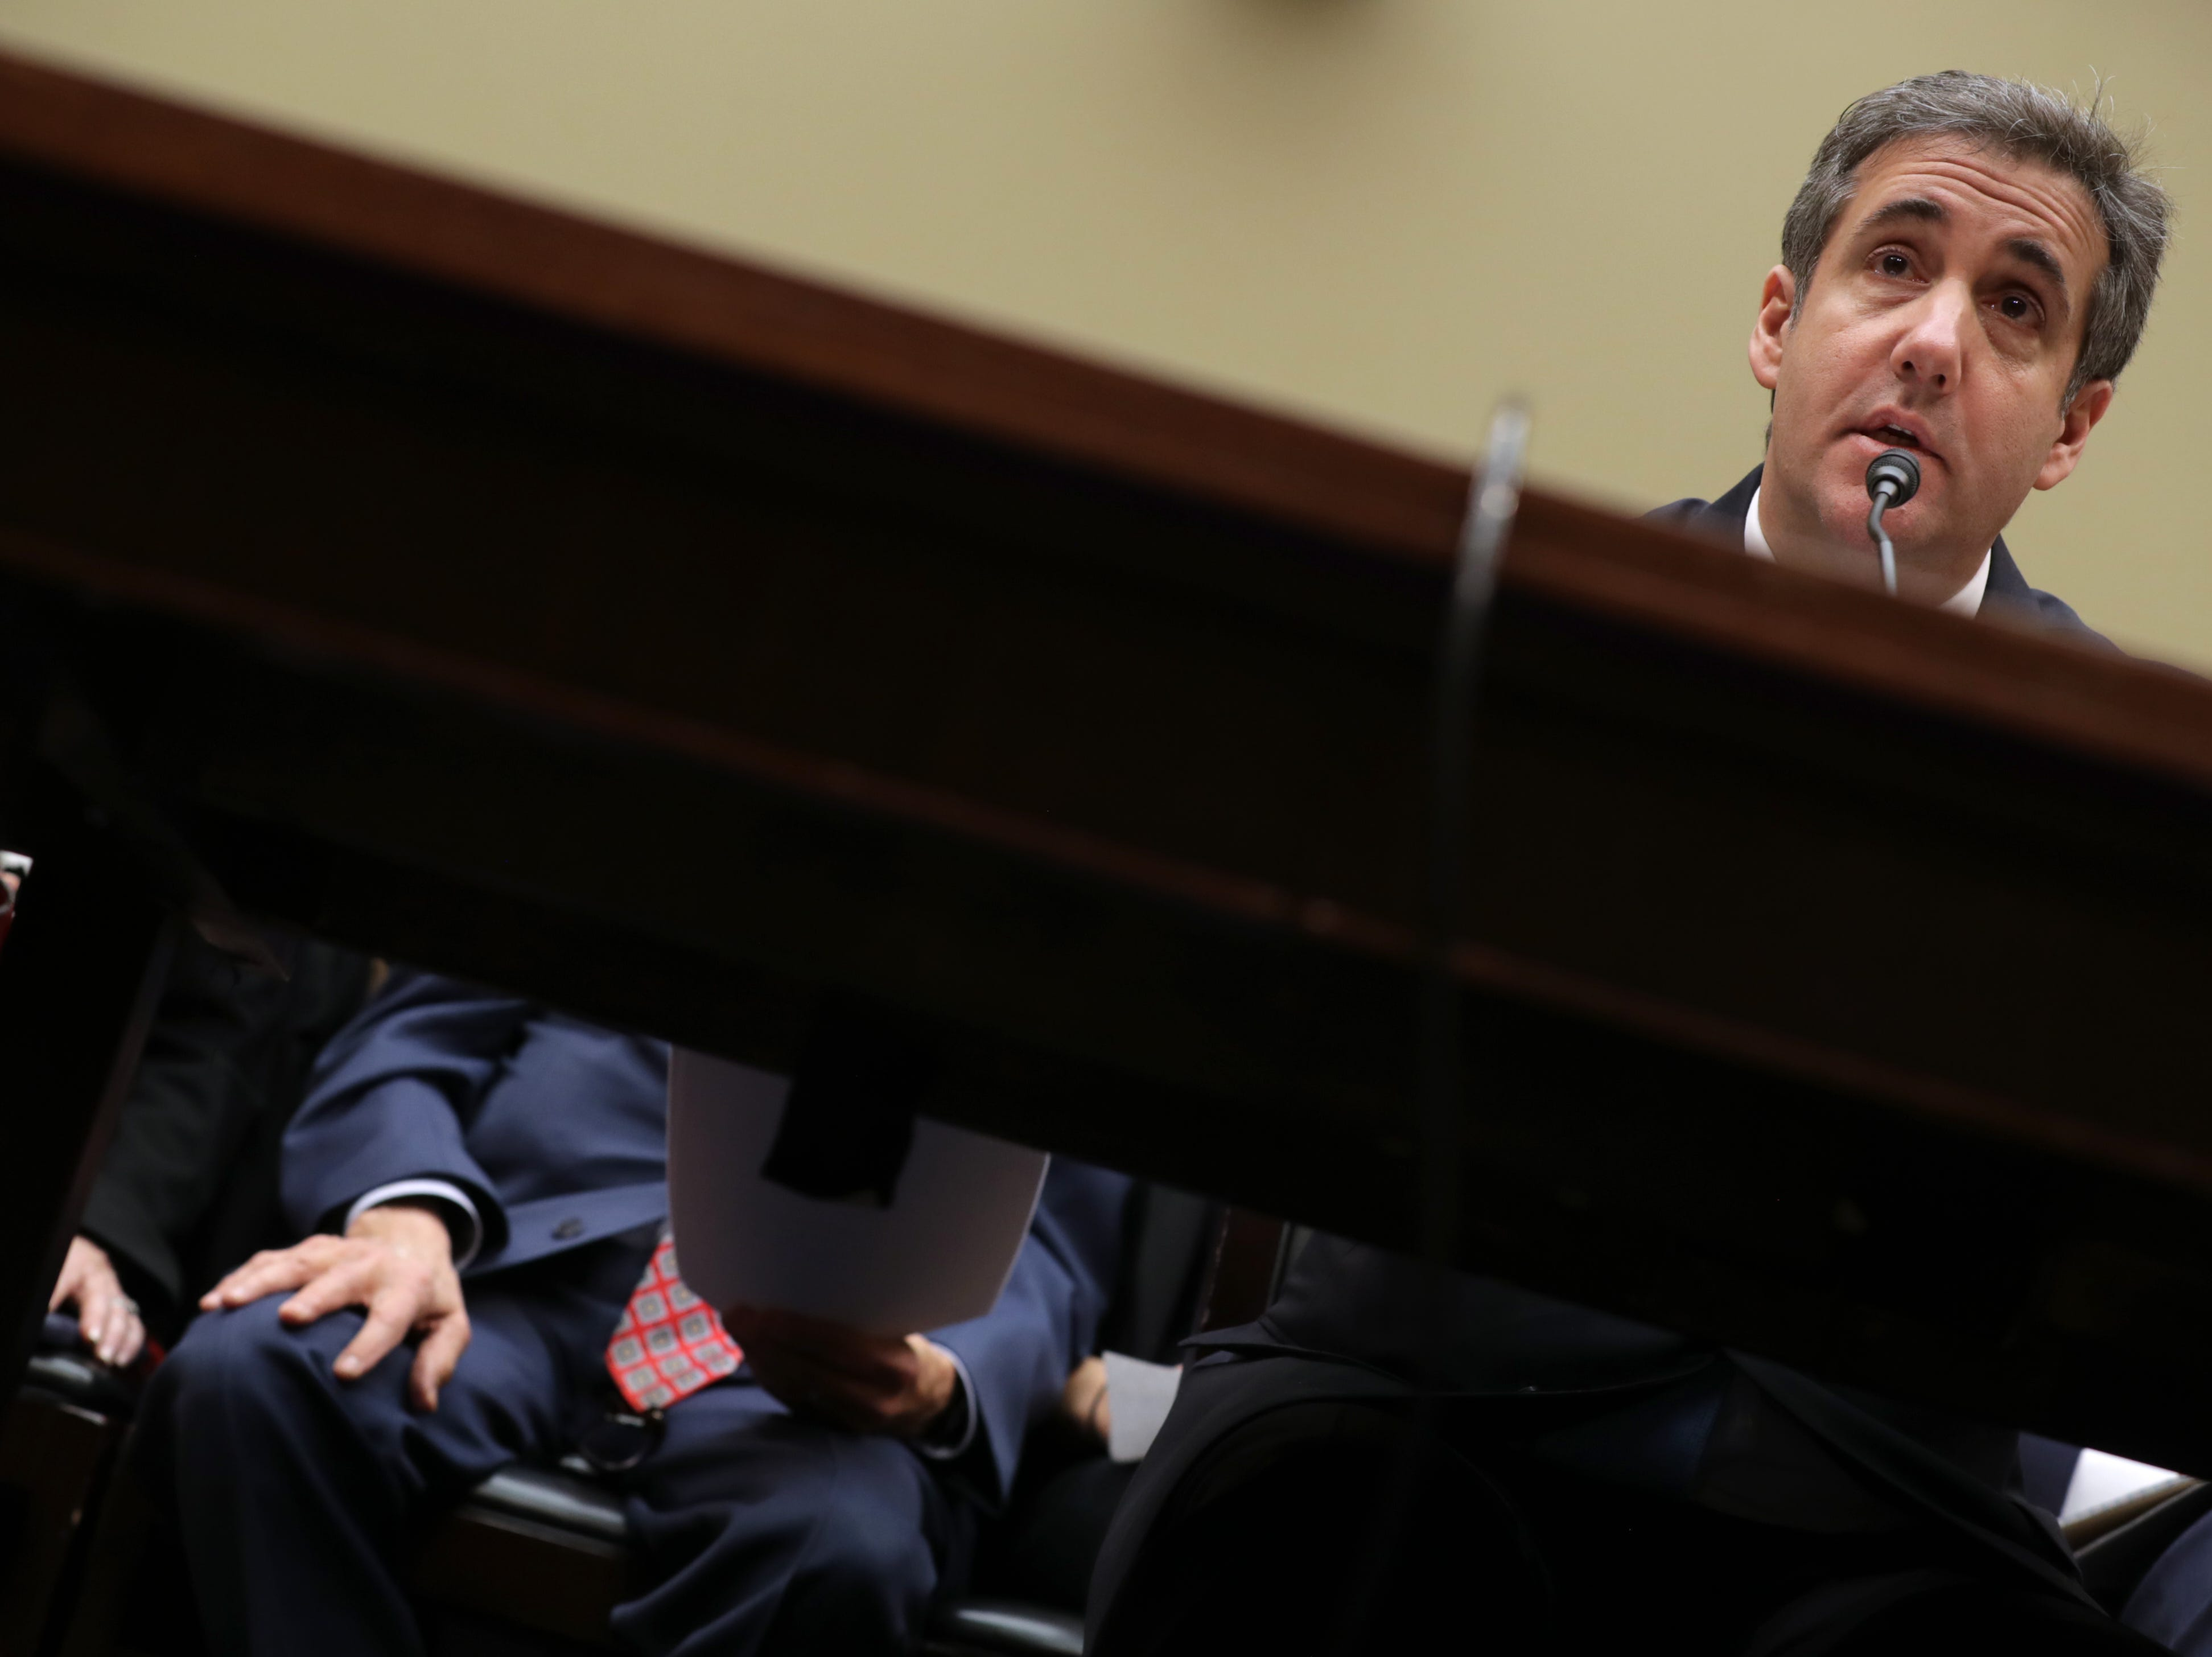 Michael Cohen, former attorney and fixer for President Donald Trump testifies before the House Oversight Committee on Capitol Hill Feb. 27, 2019 in Washington, DC. Last year Cohen was sentenced to three years in prison and ordered to pay a $50,000 fine for tax evasion, making false statements to a financial institution, unlawful excessive campaign contributions and lying to Congress as part of special counsel Robert Mueller's investigation into Russian meddling in the 2016 presidential elections.